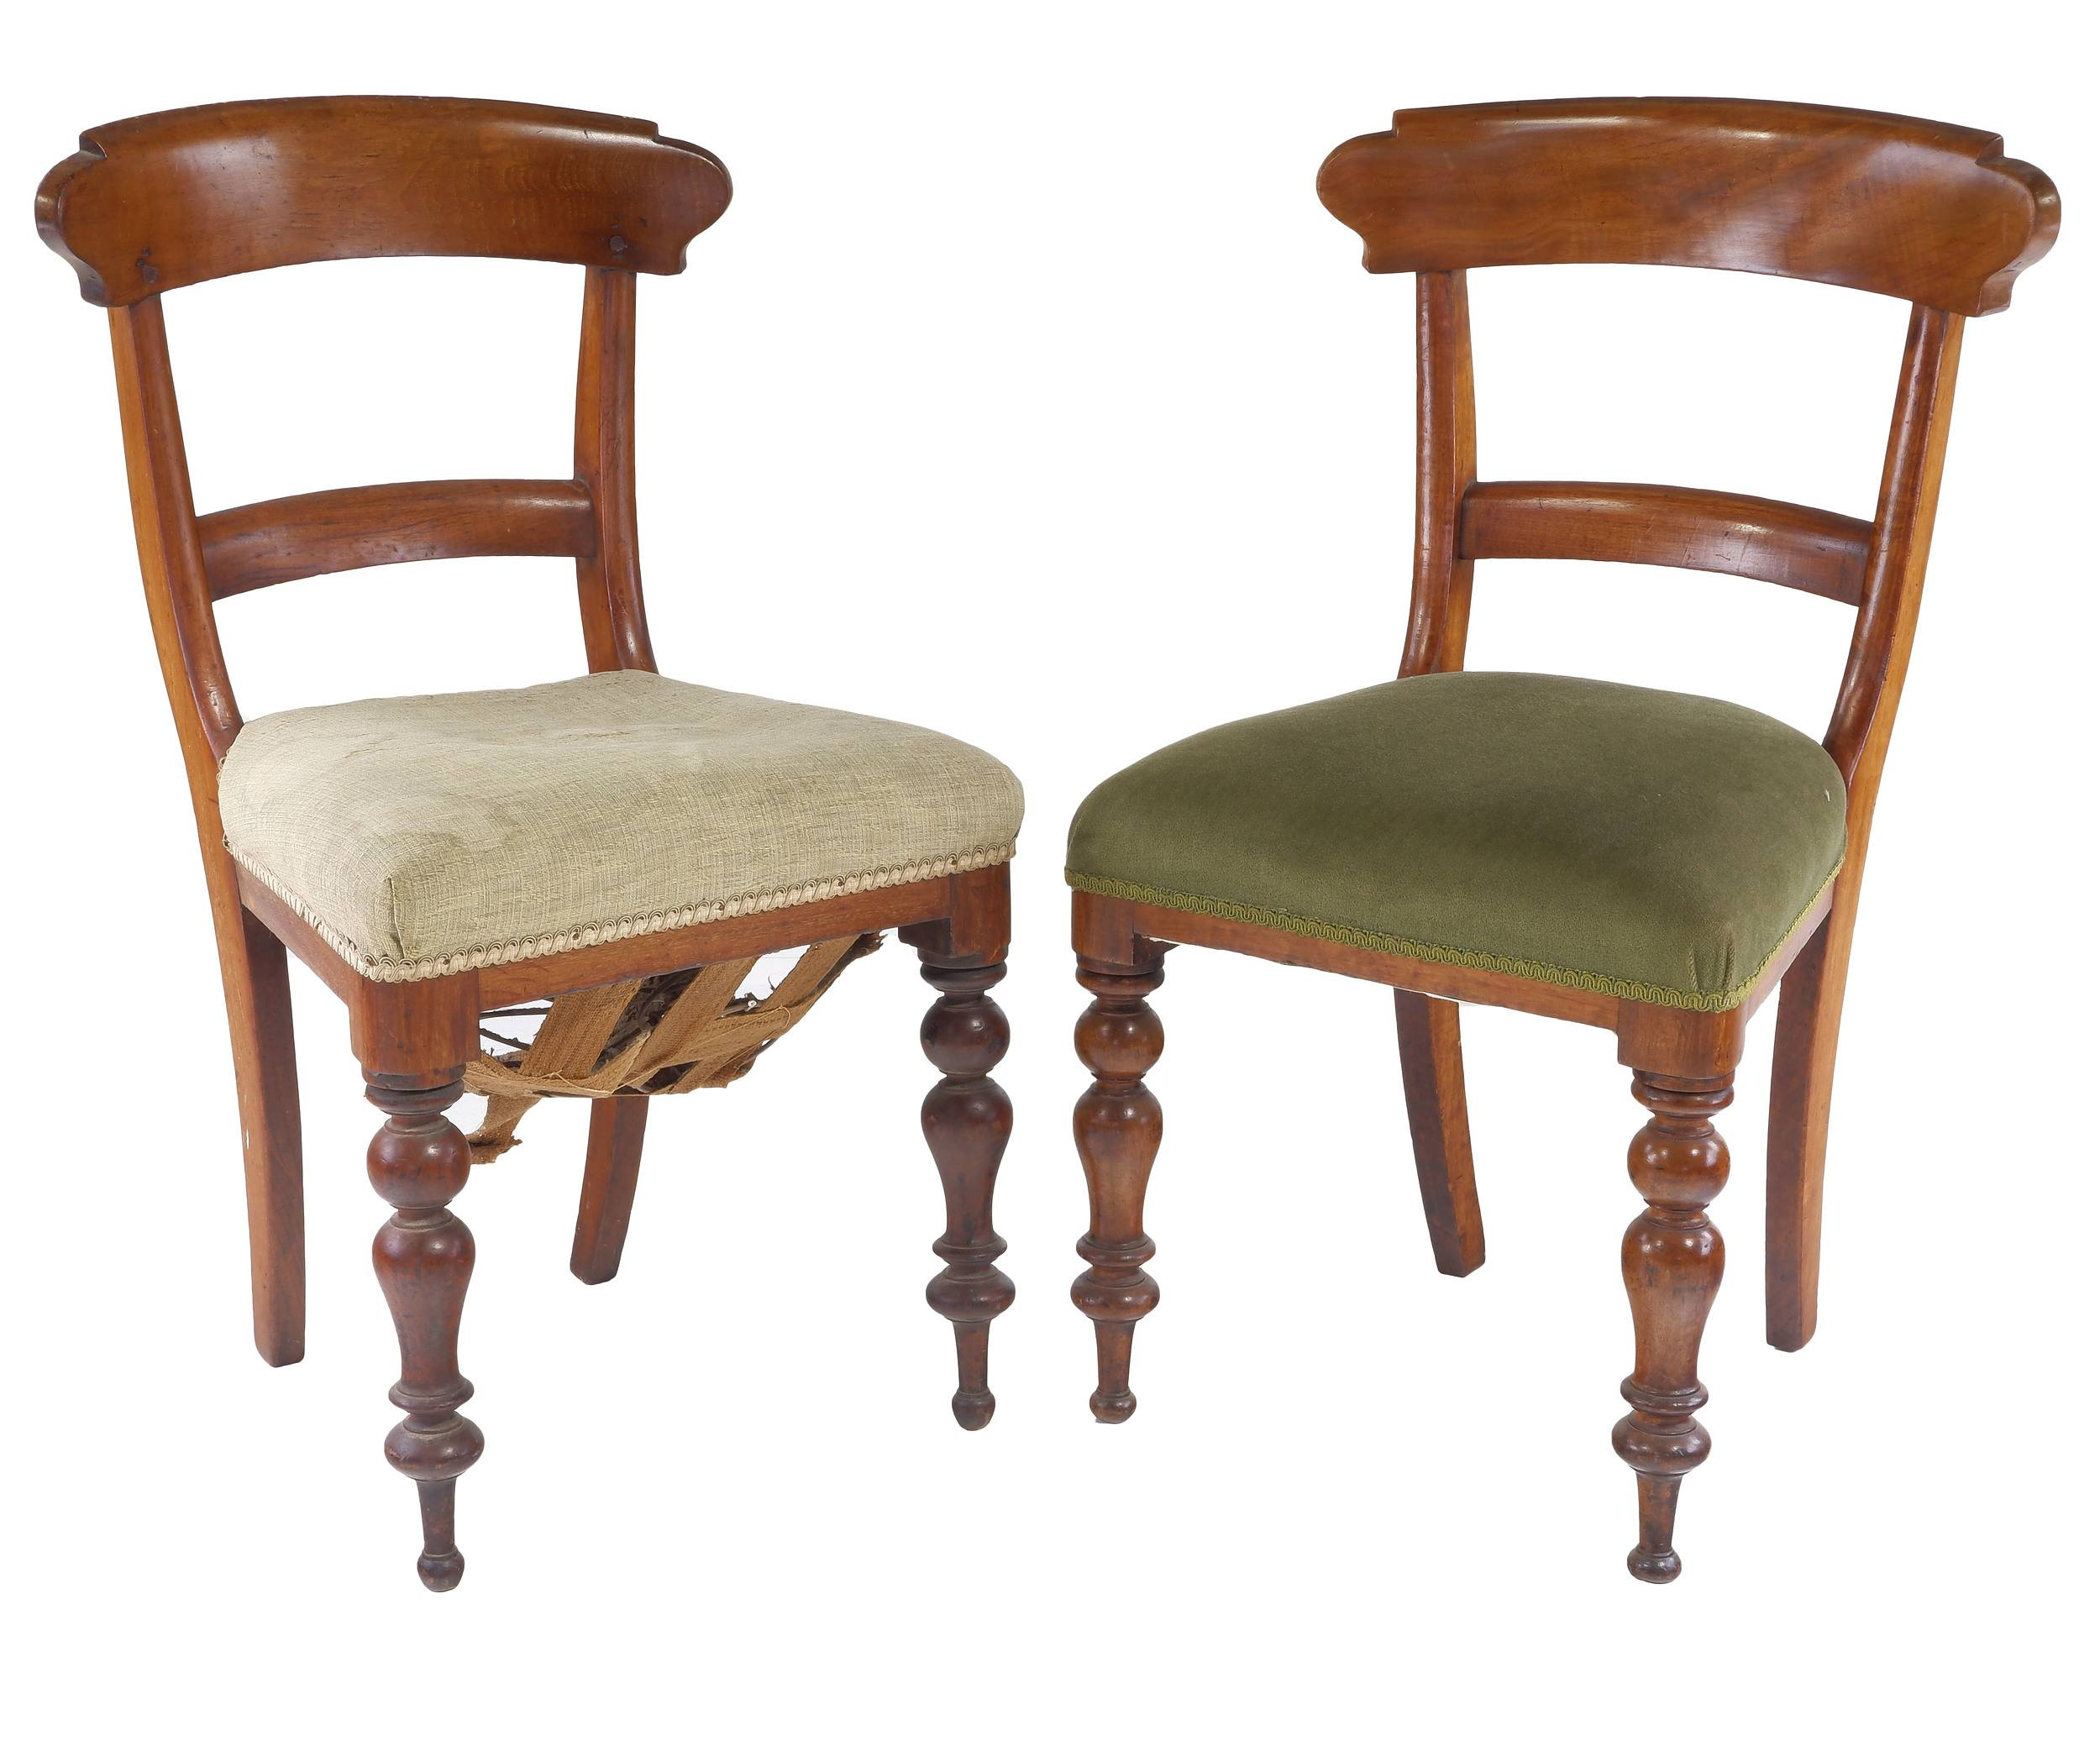 'Two Australian Cedar Barback Chairs ex Gidleigh via Bungendore NSW'